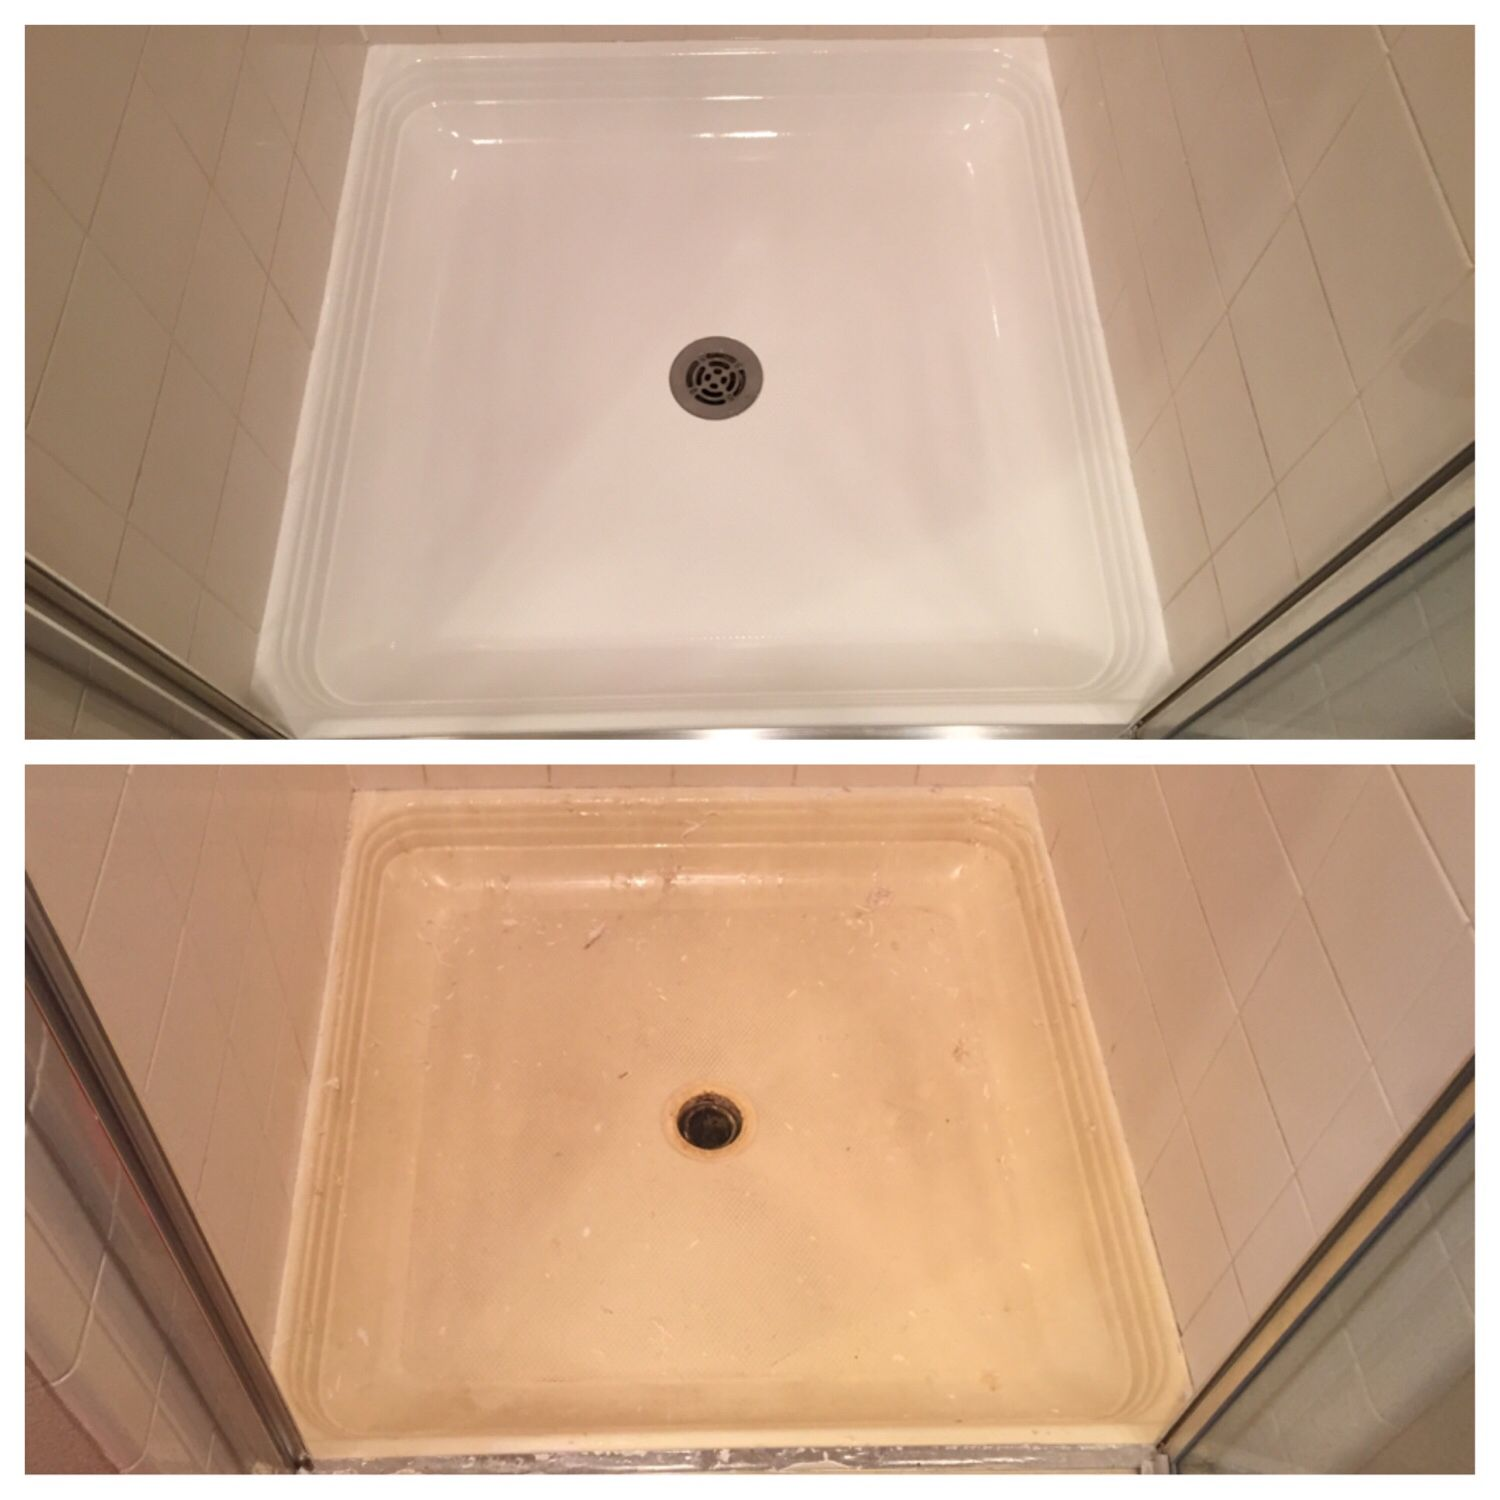 Pin by Happy Tubs Bathtub Repair on Bathtub Repair and Jacuzzi Repair  Bathtub repair Bathtub